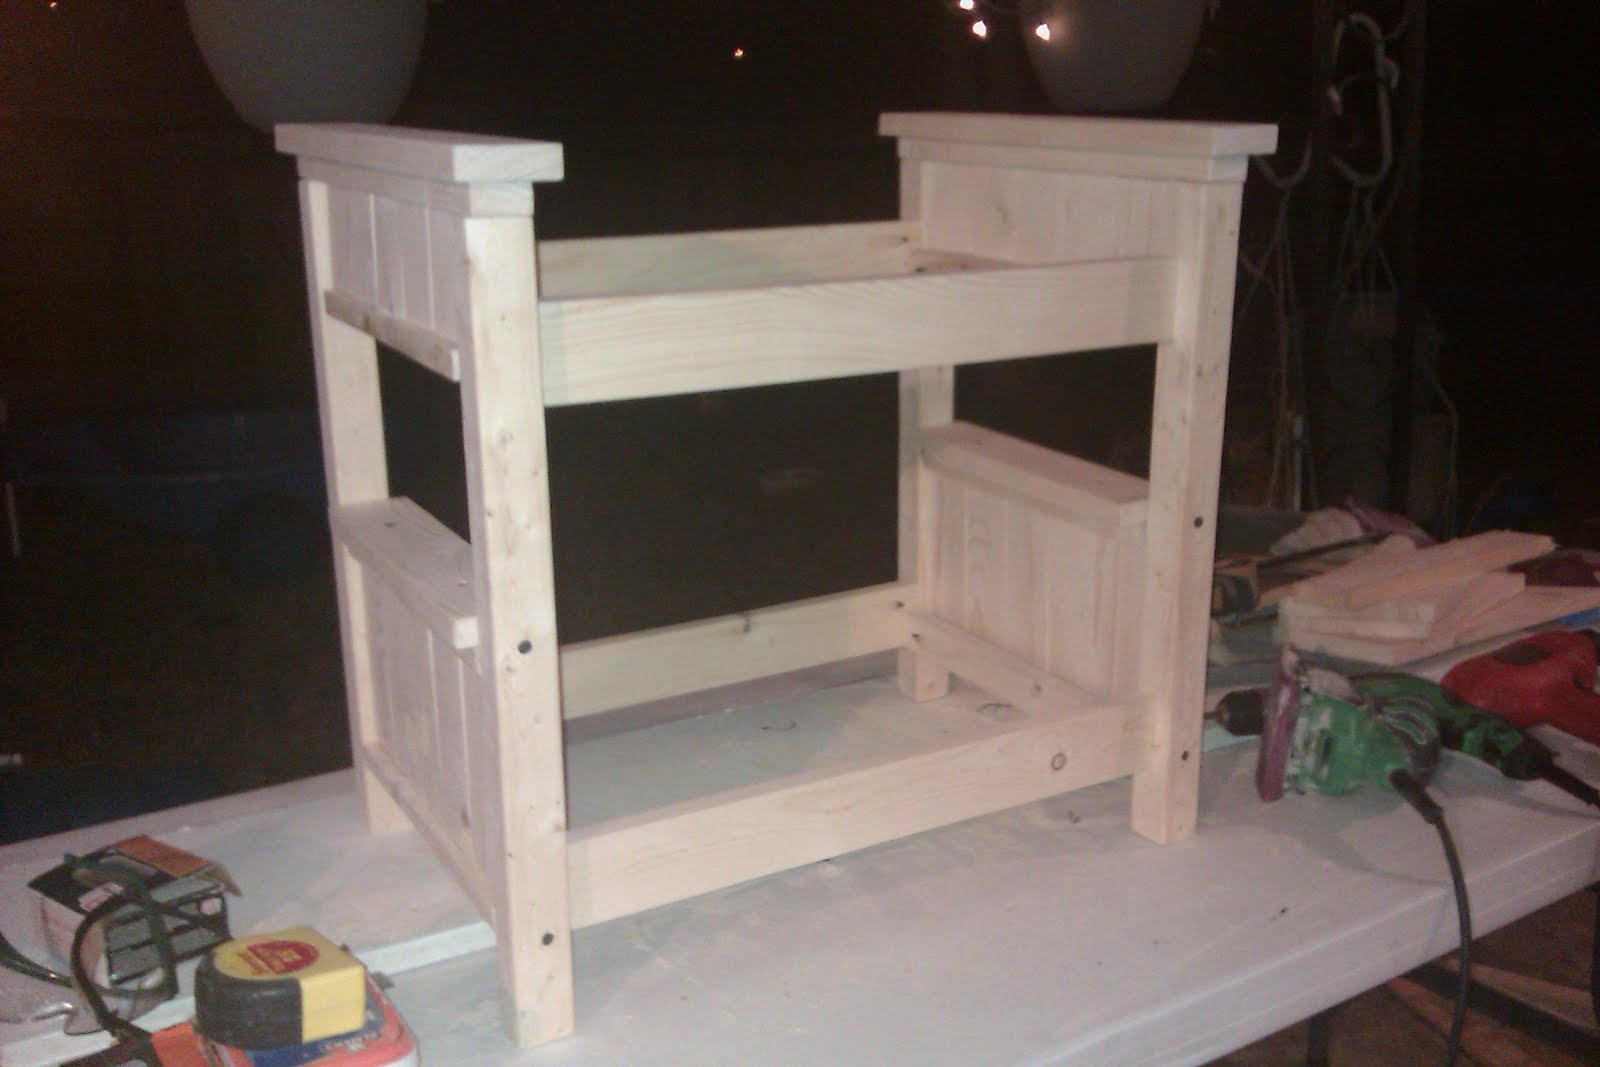 ... Bunk Bed Plans Doll Download bunk bed plans building » woodworktips